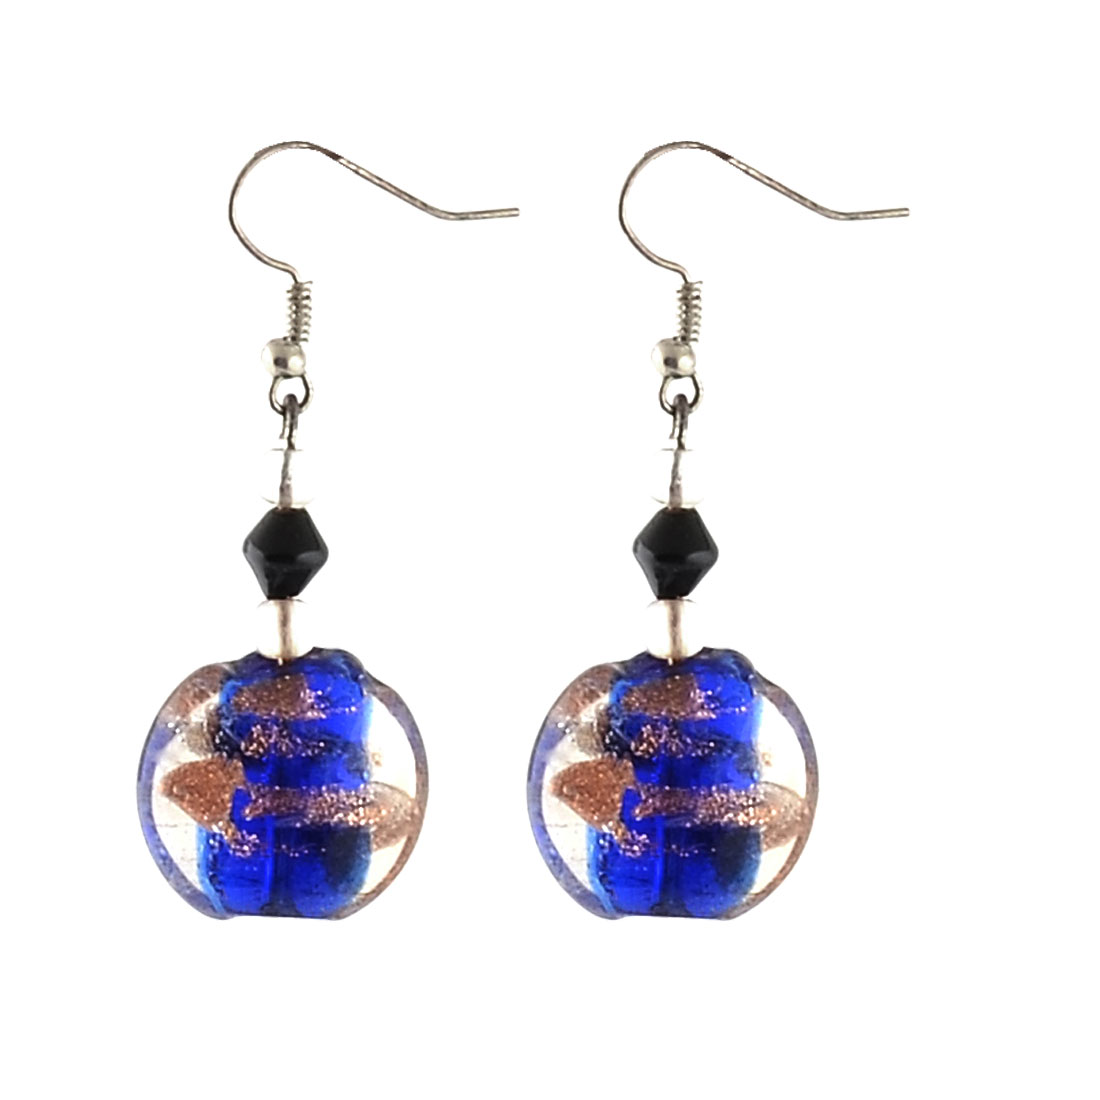 Lady Plastic Round Diamond Bead Dangling Pendant Fish Hook Earrings Blue Pair